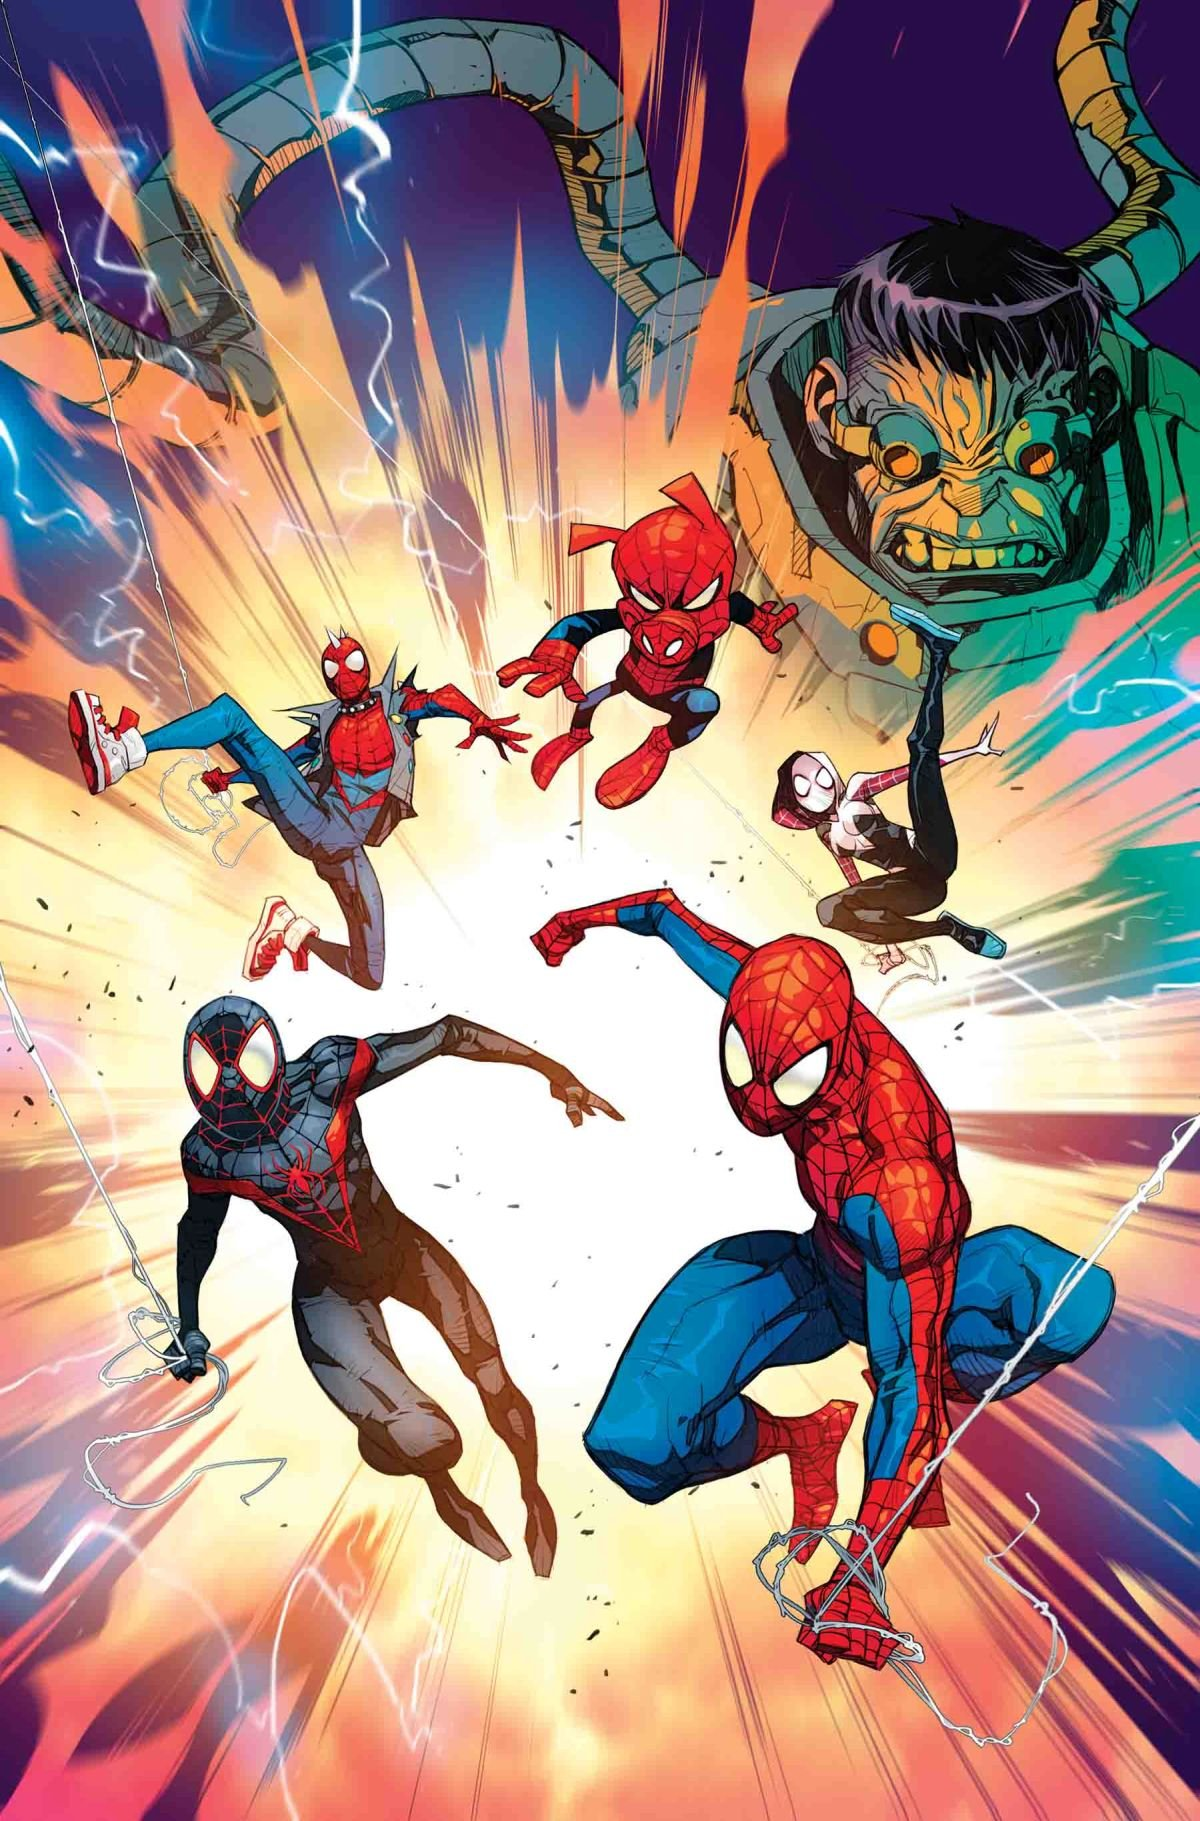 SPIDER-MAN: ENTER THE SPIDER-VERSE #1